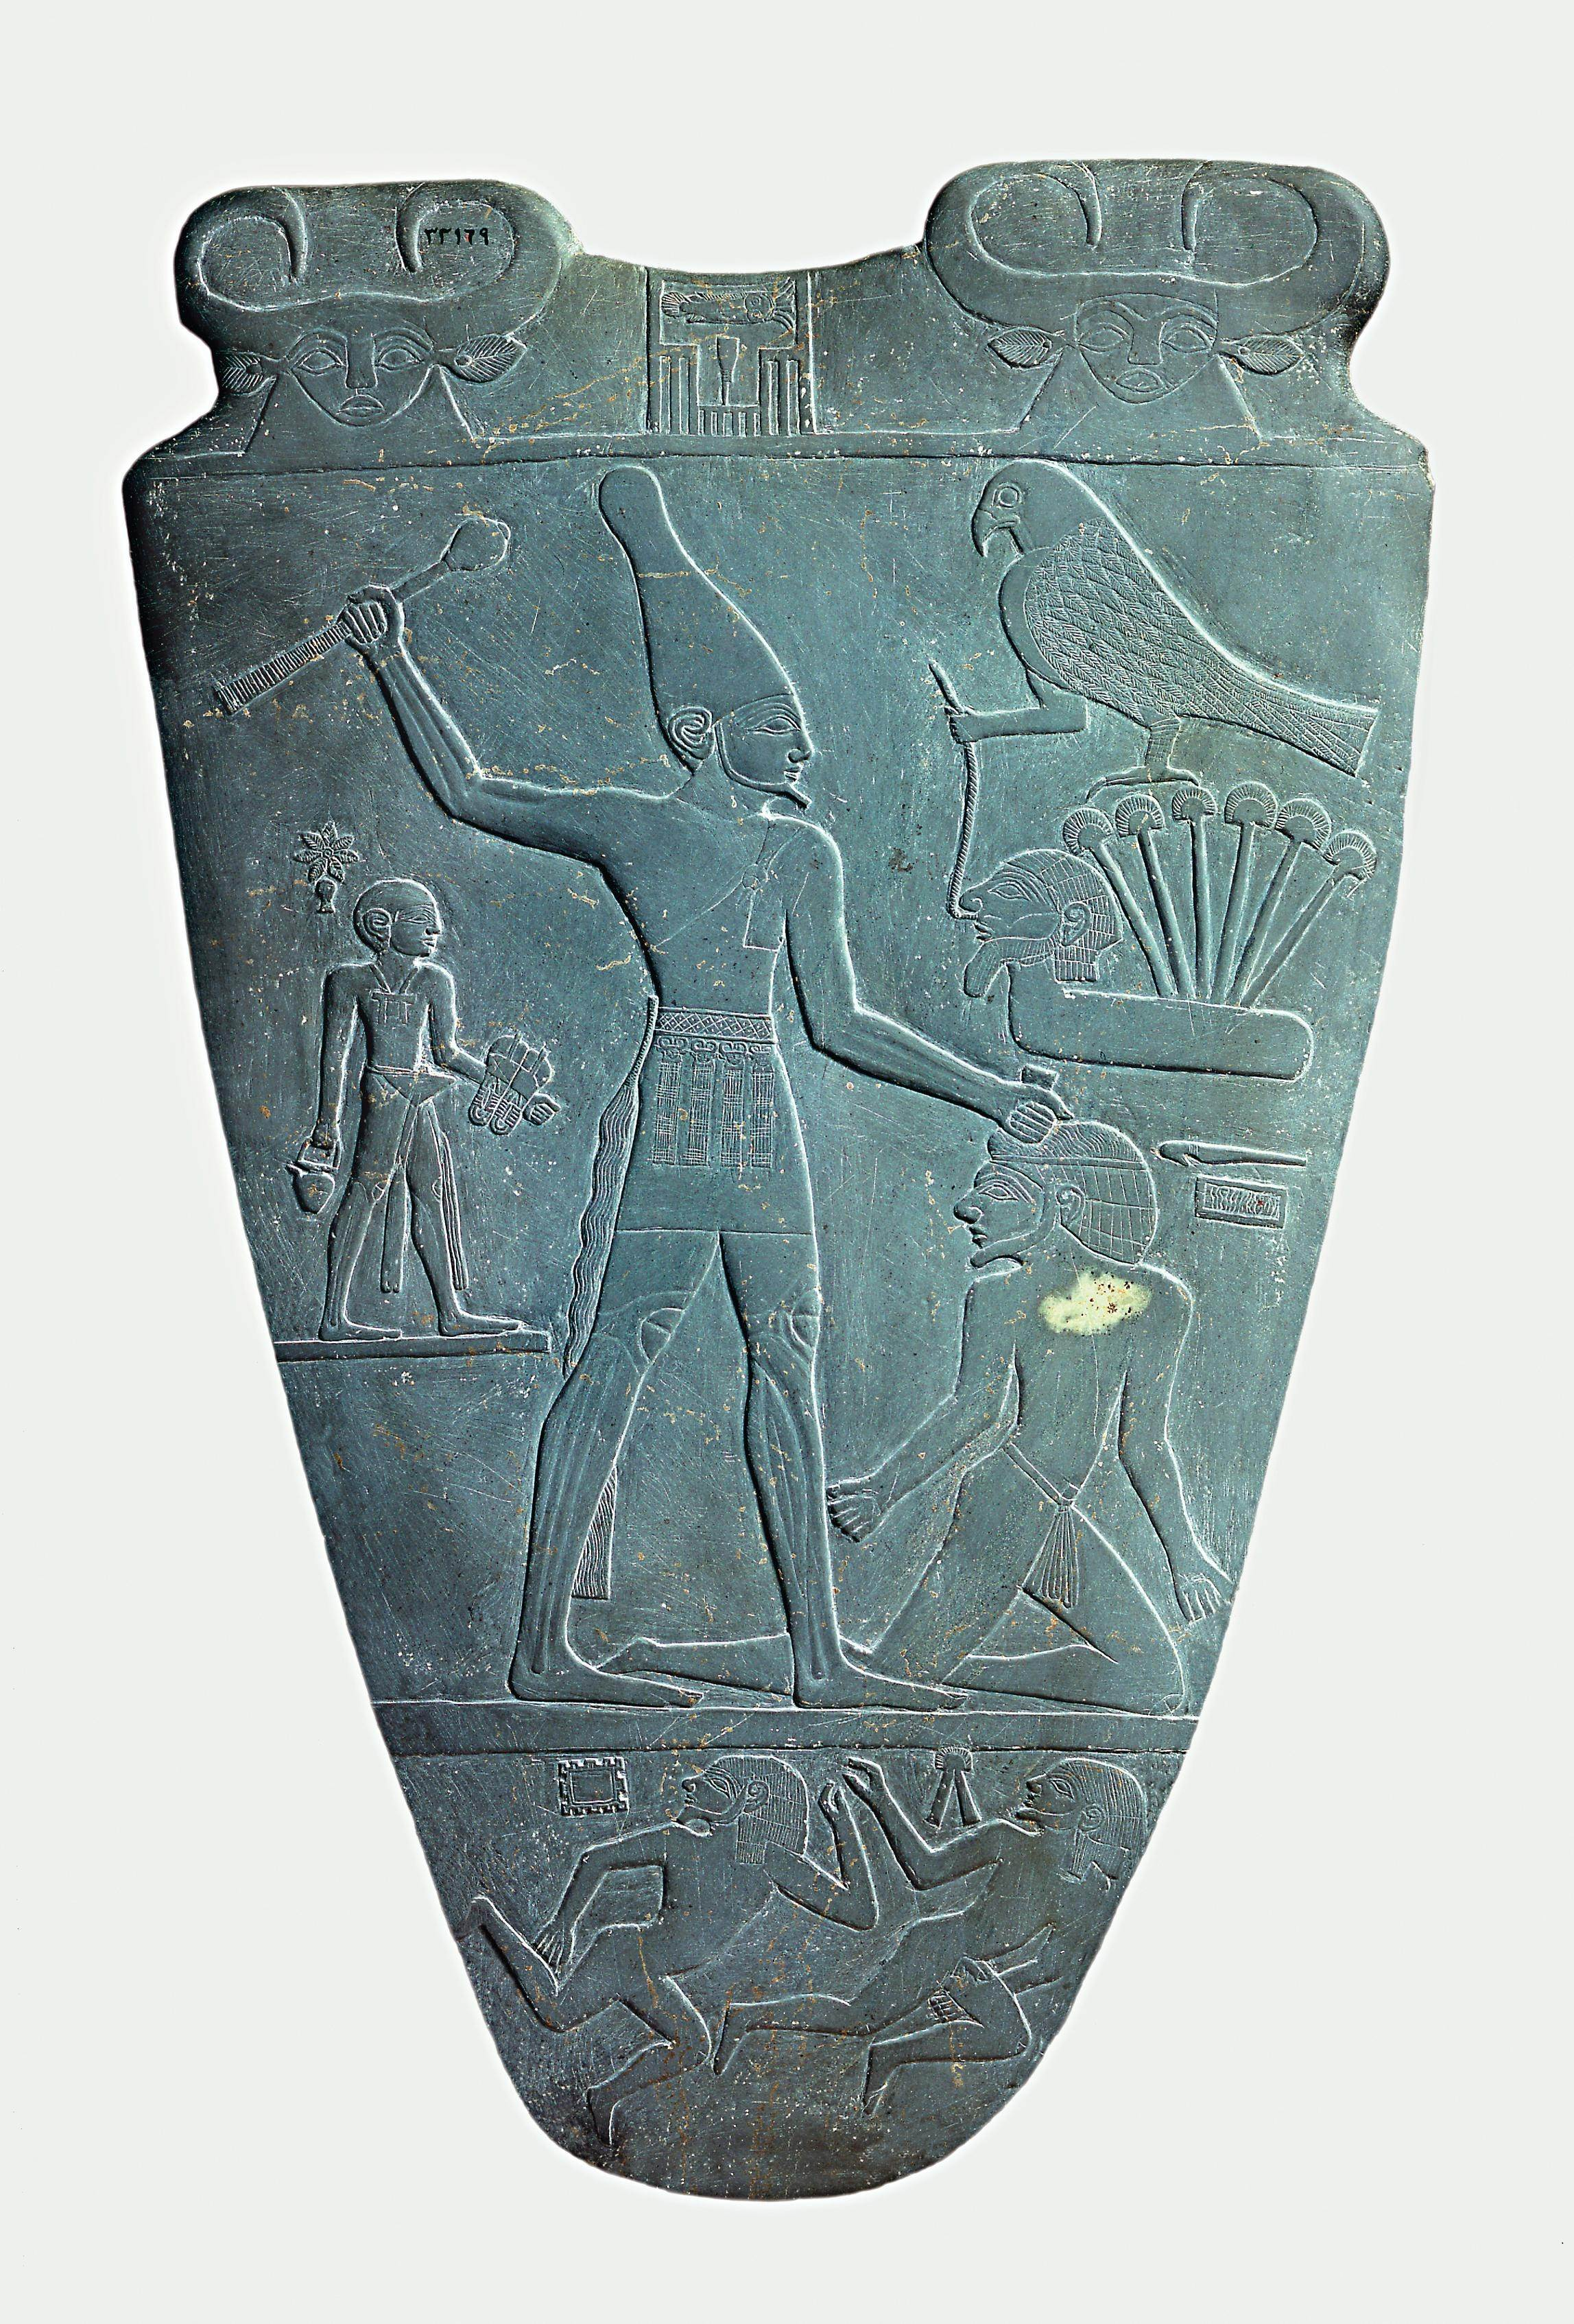 What did Osiris and Isis do for the Egyptians? - Quora